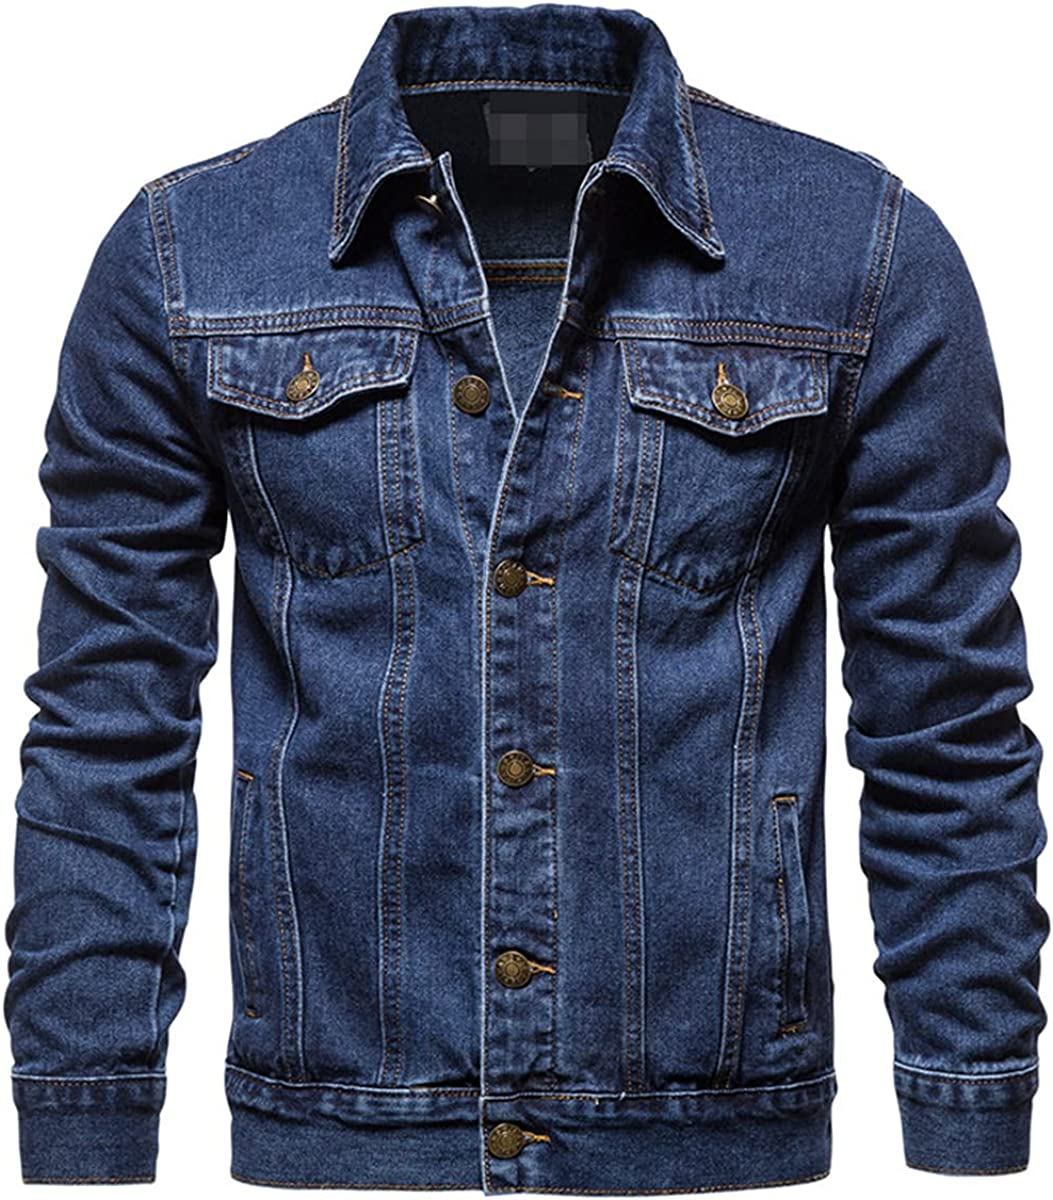 Cotton Denim Jacket Men's Casual Solid Color Lapel Single-Breasted Jeans Jacket Fall Slim Top